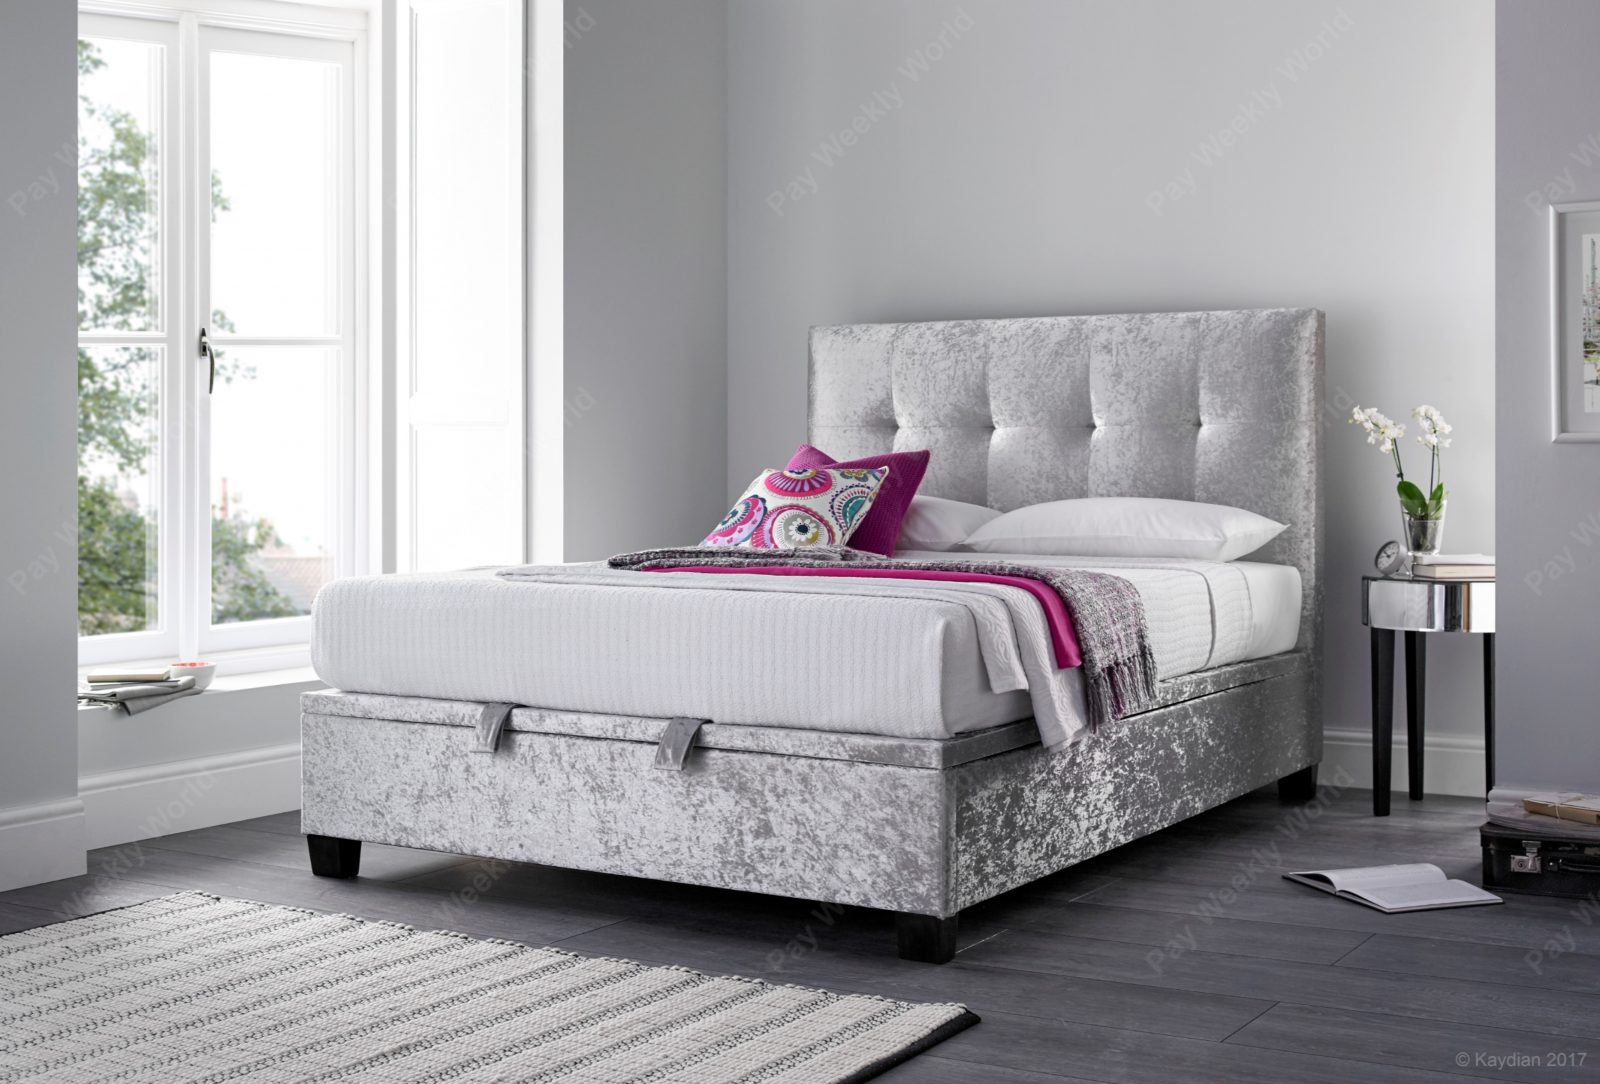 Walkworth Ottoman Silver Crushed Velvet Bed Frame – Super King